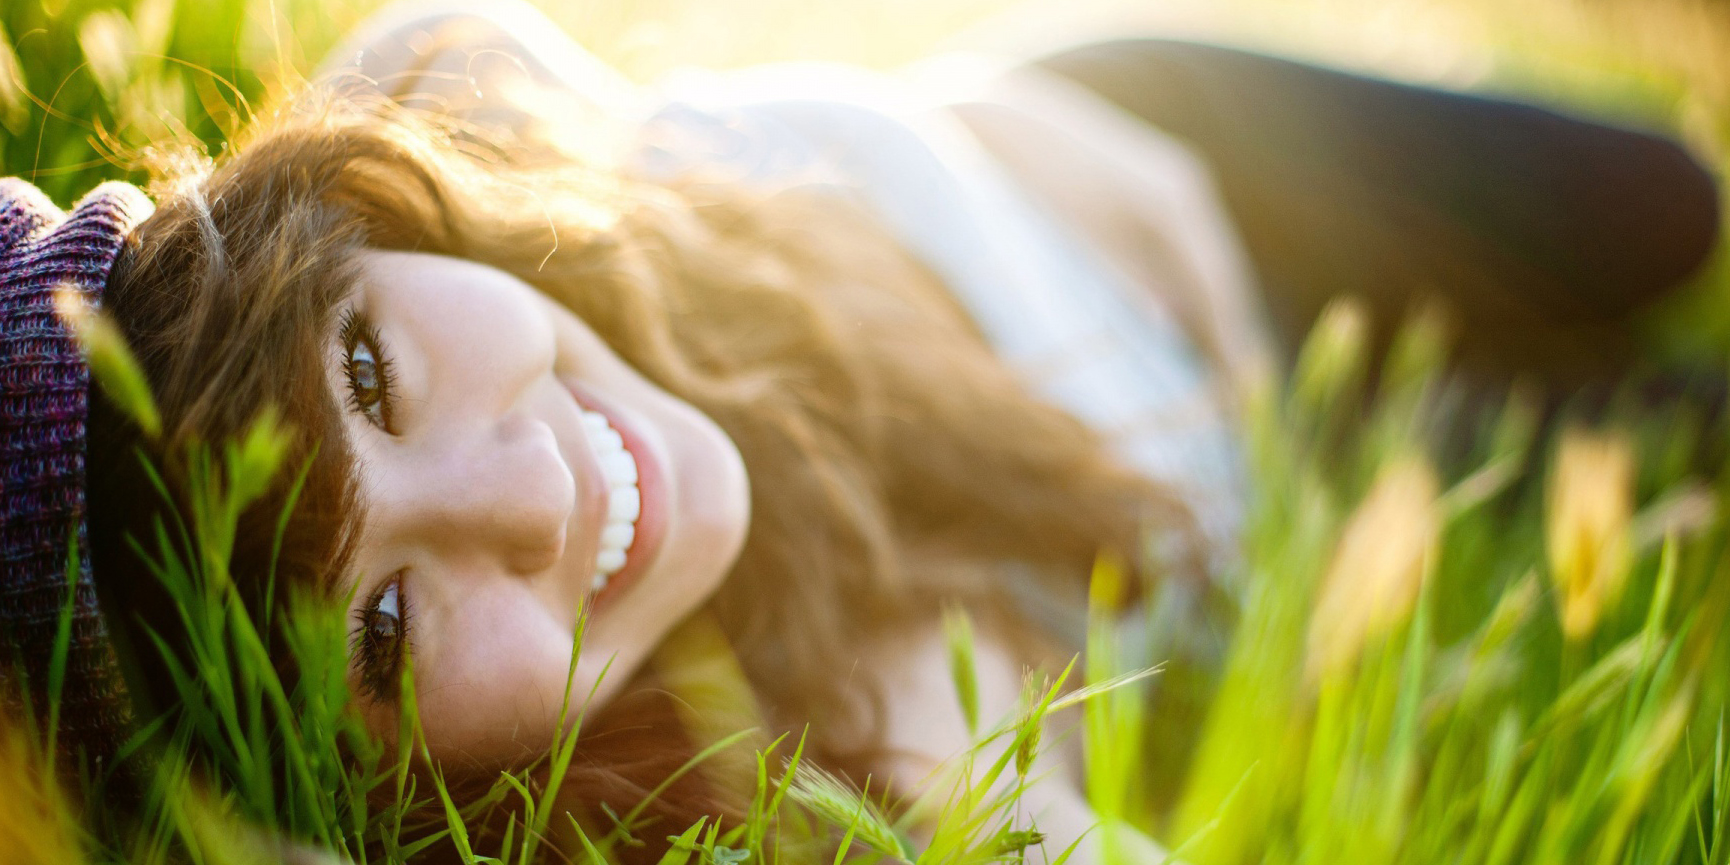 girl, smiling, nature, Outdoors